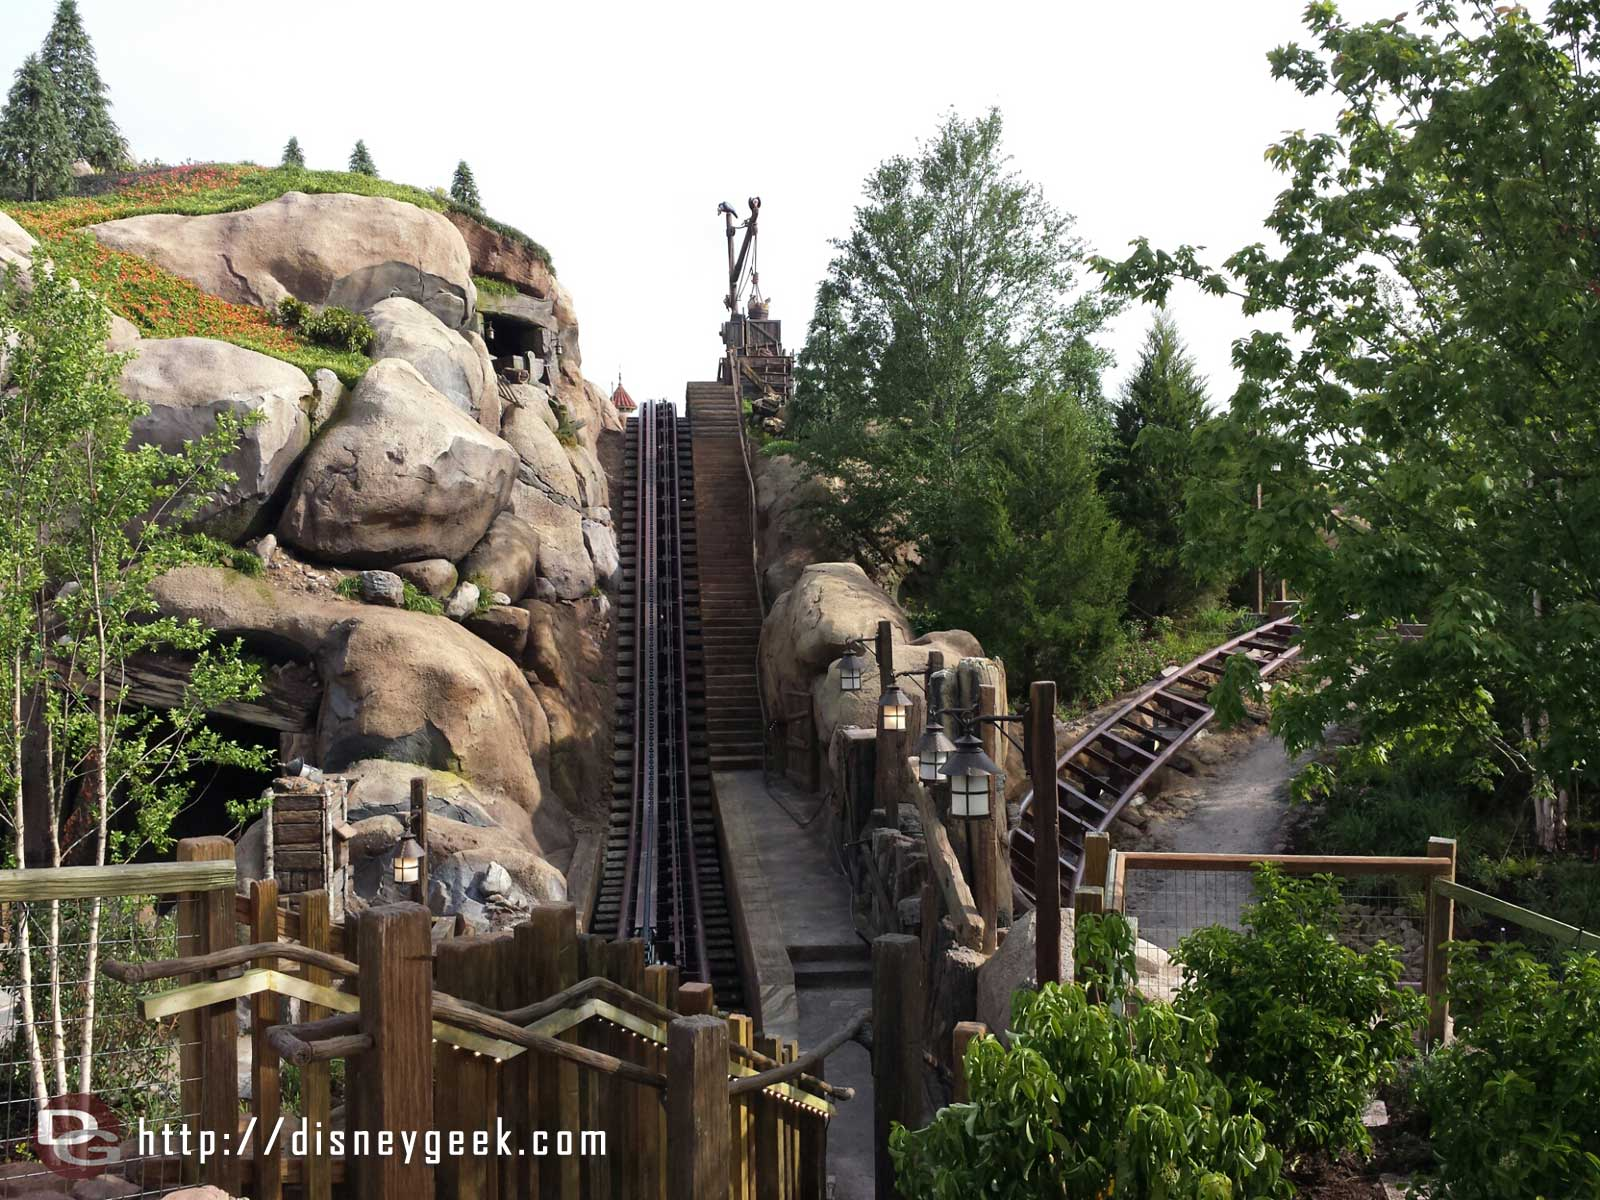 A look at one of the lift hills for the Seven Dwarfs Mine Train